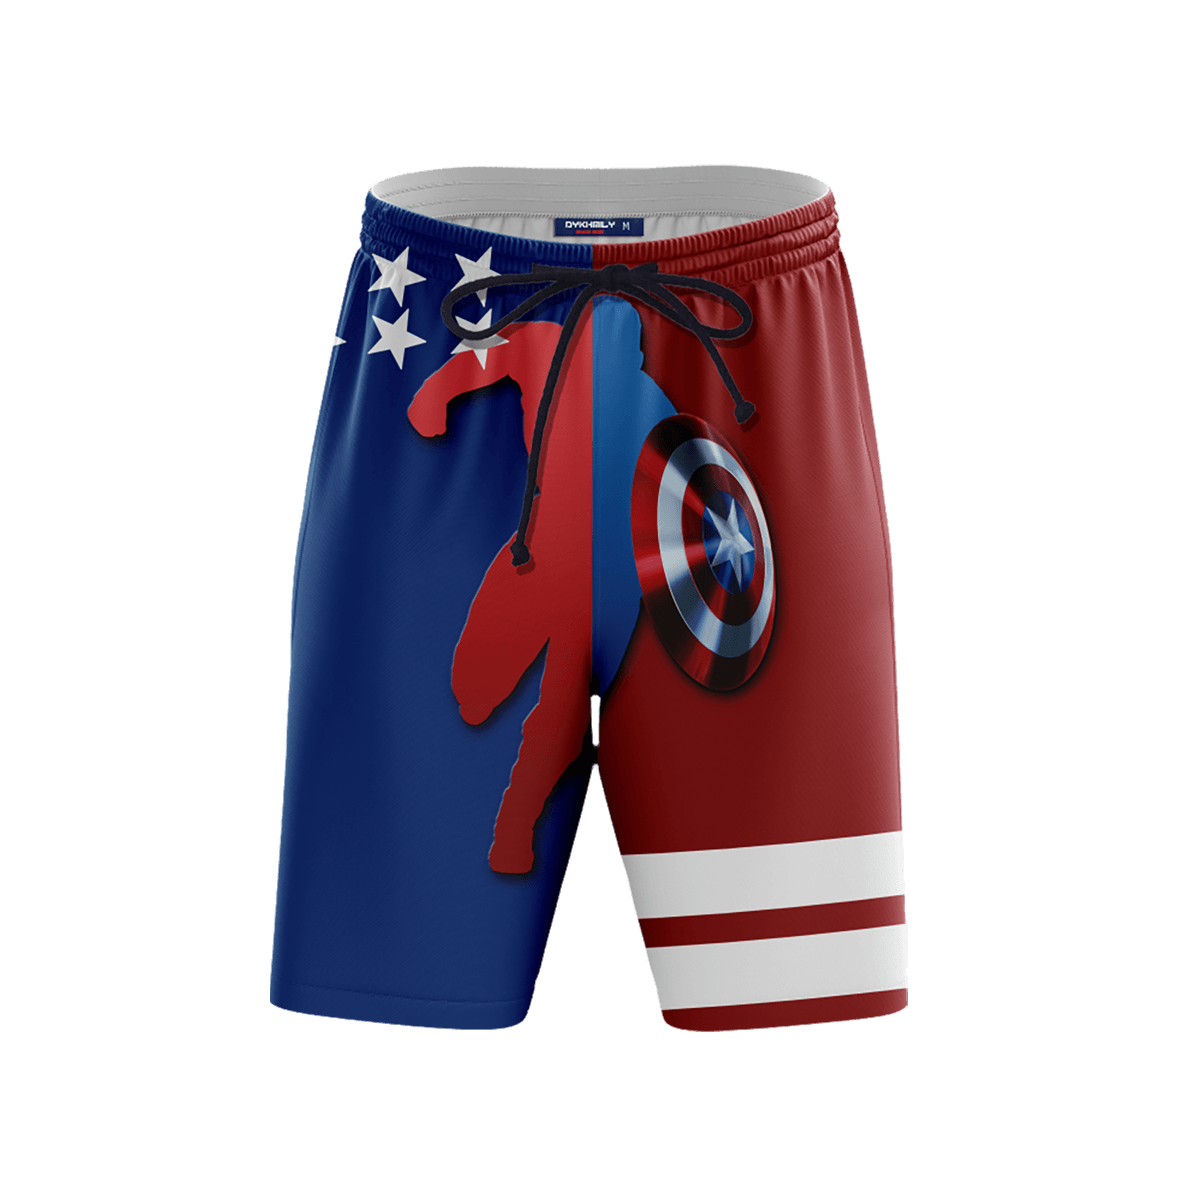 Stars and Stripes Beach Shorts FDM3107 S Official Anime Swimsuit Merch